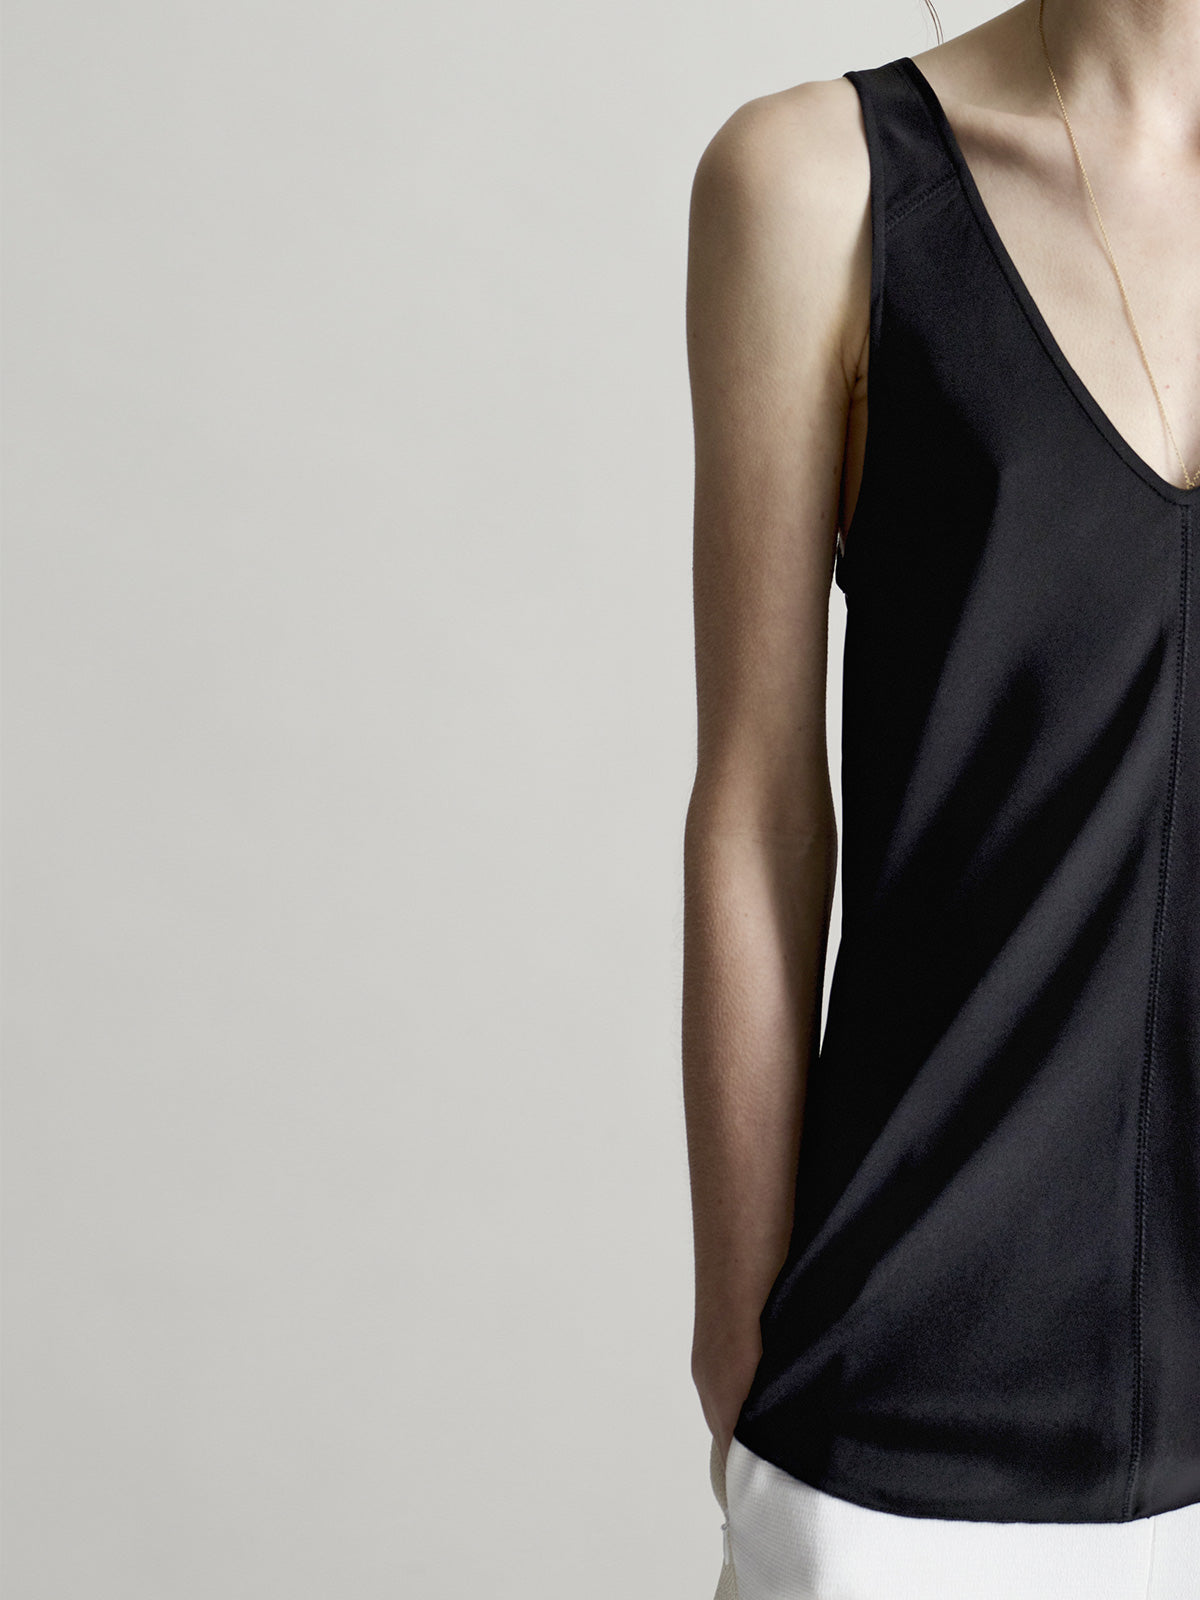 Josie Bias Vest, Black - Sykes London